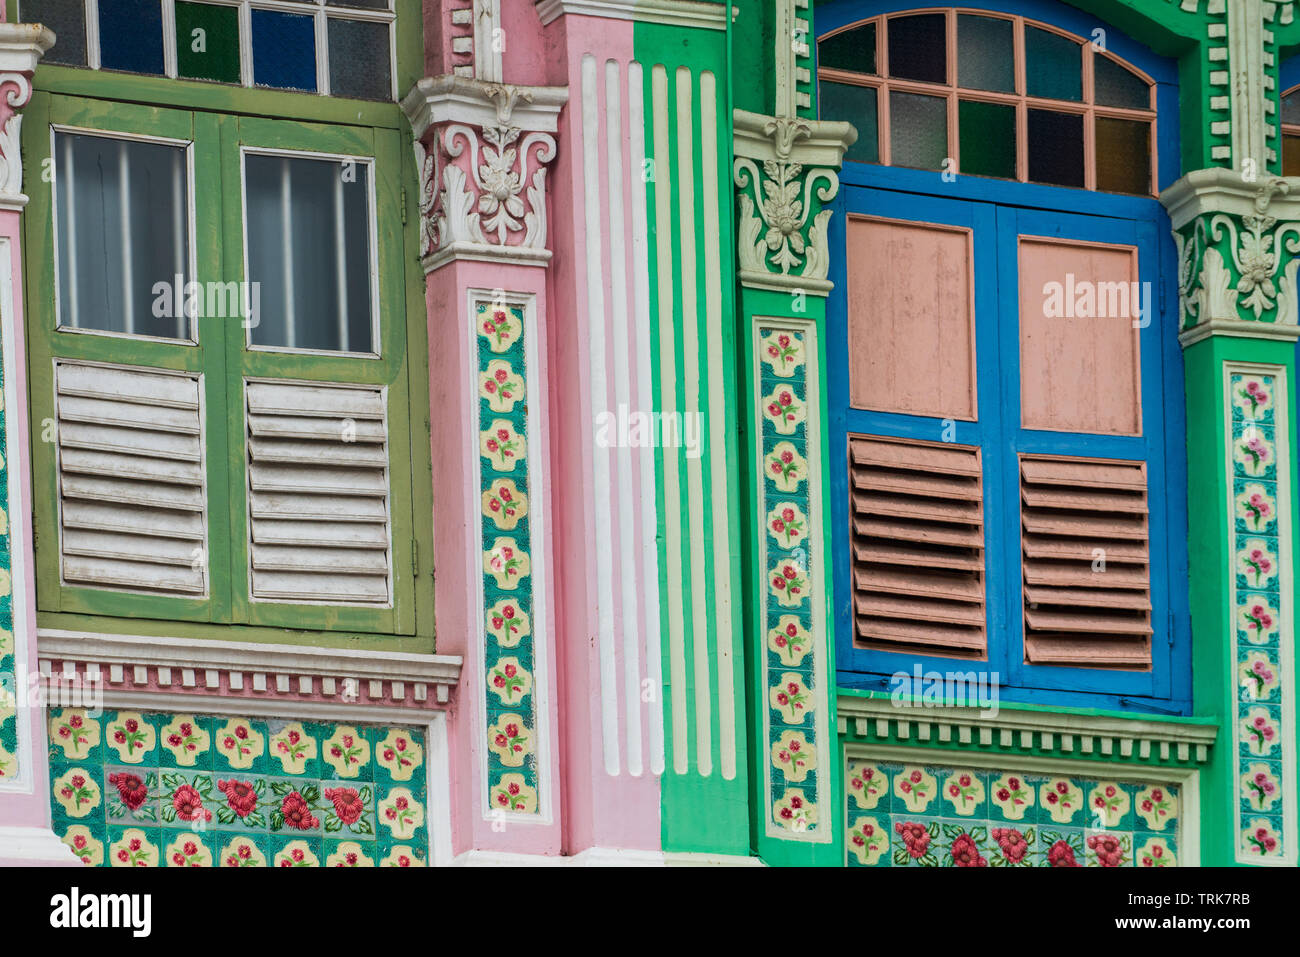 The Joo Chiat area of Singapore is well known for Peranakan style architecture and colourful shophouses. - Stock Image